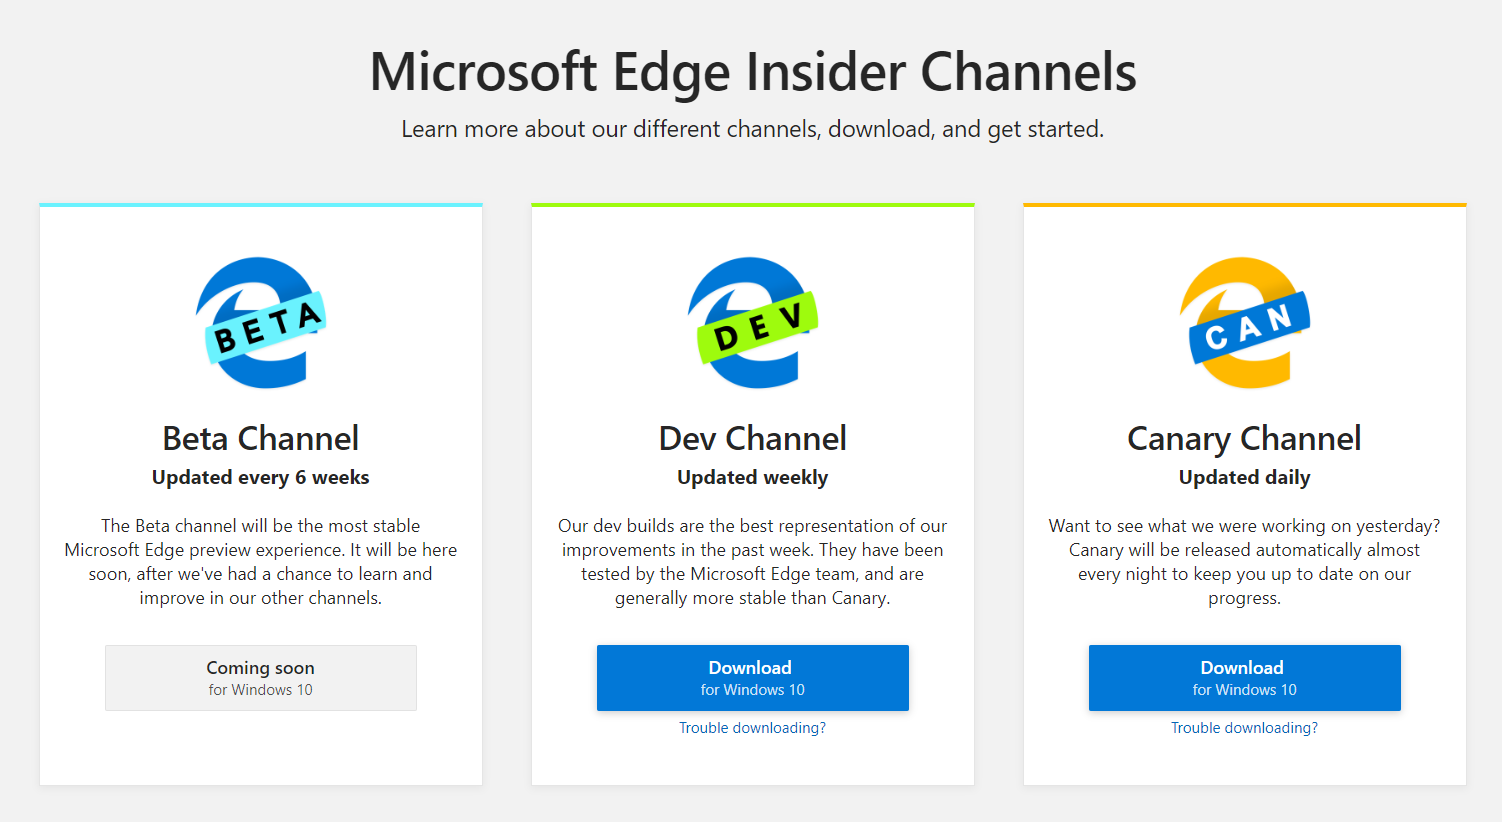 Microsoft Edge insider channels